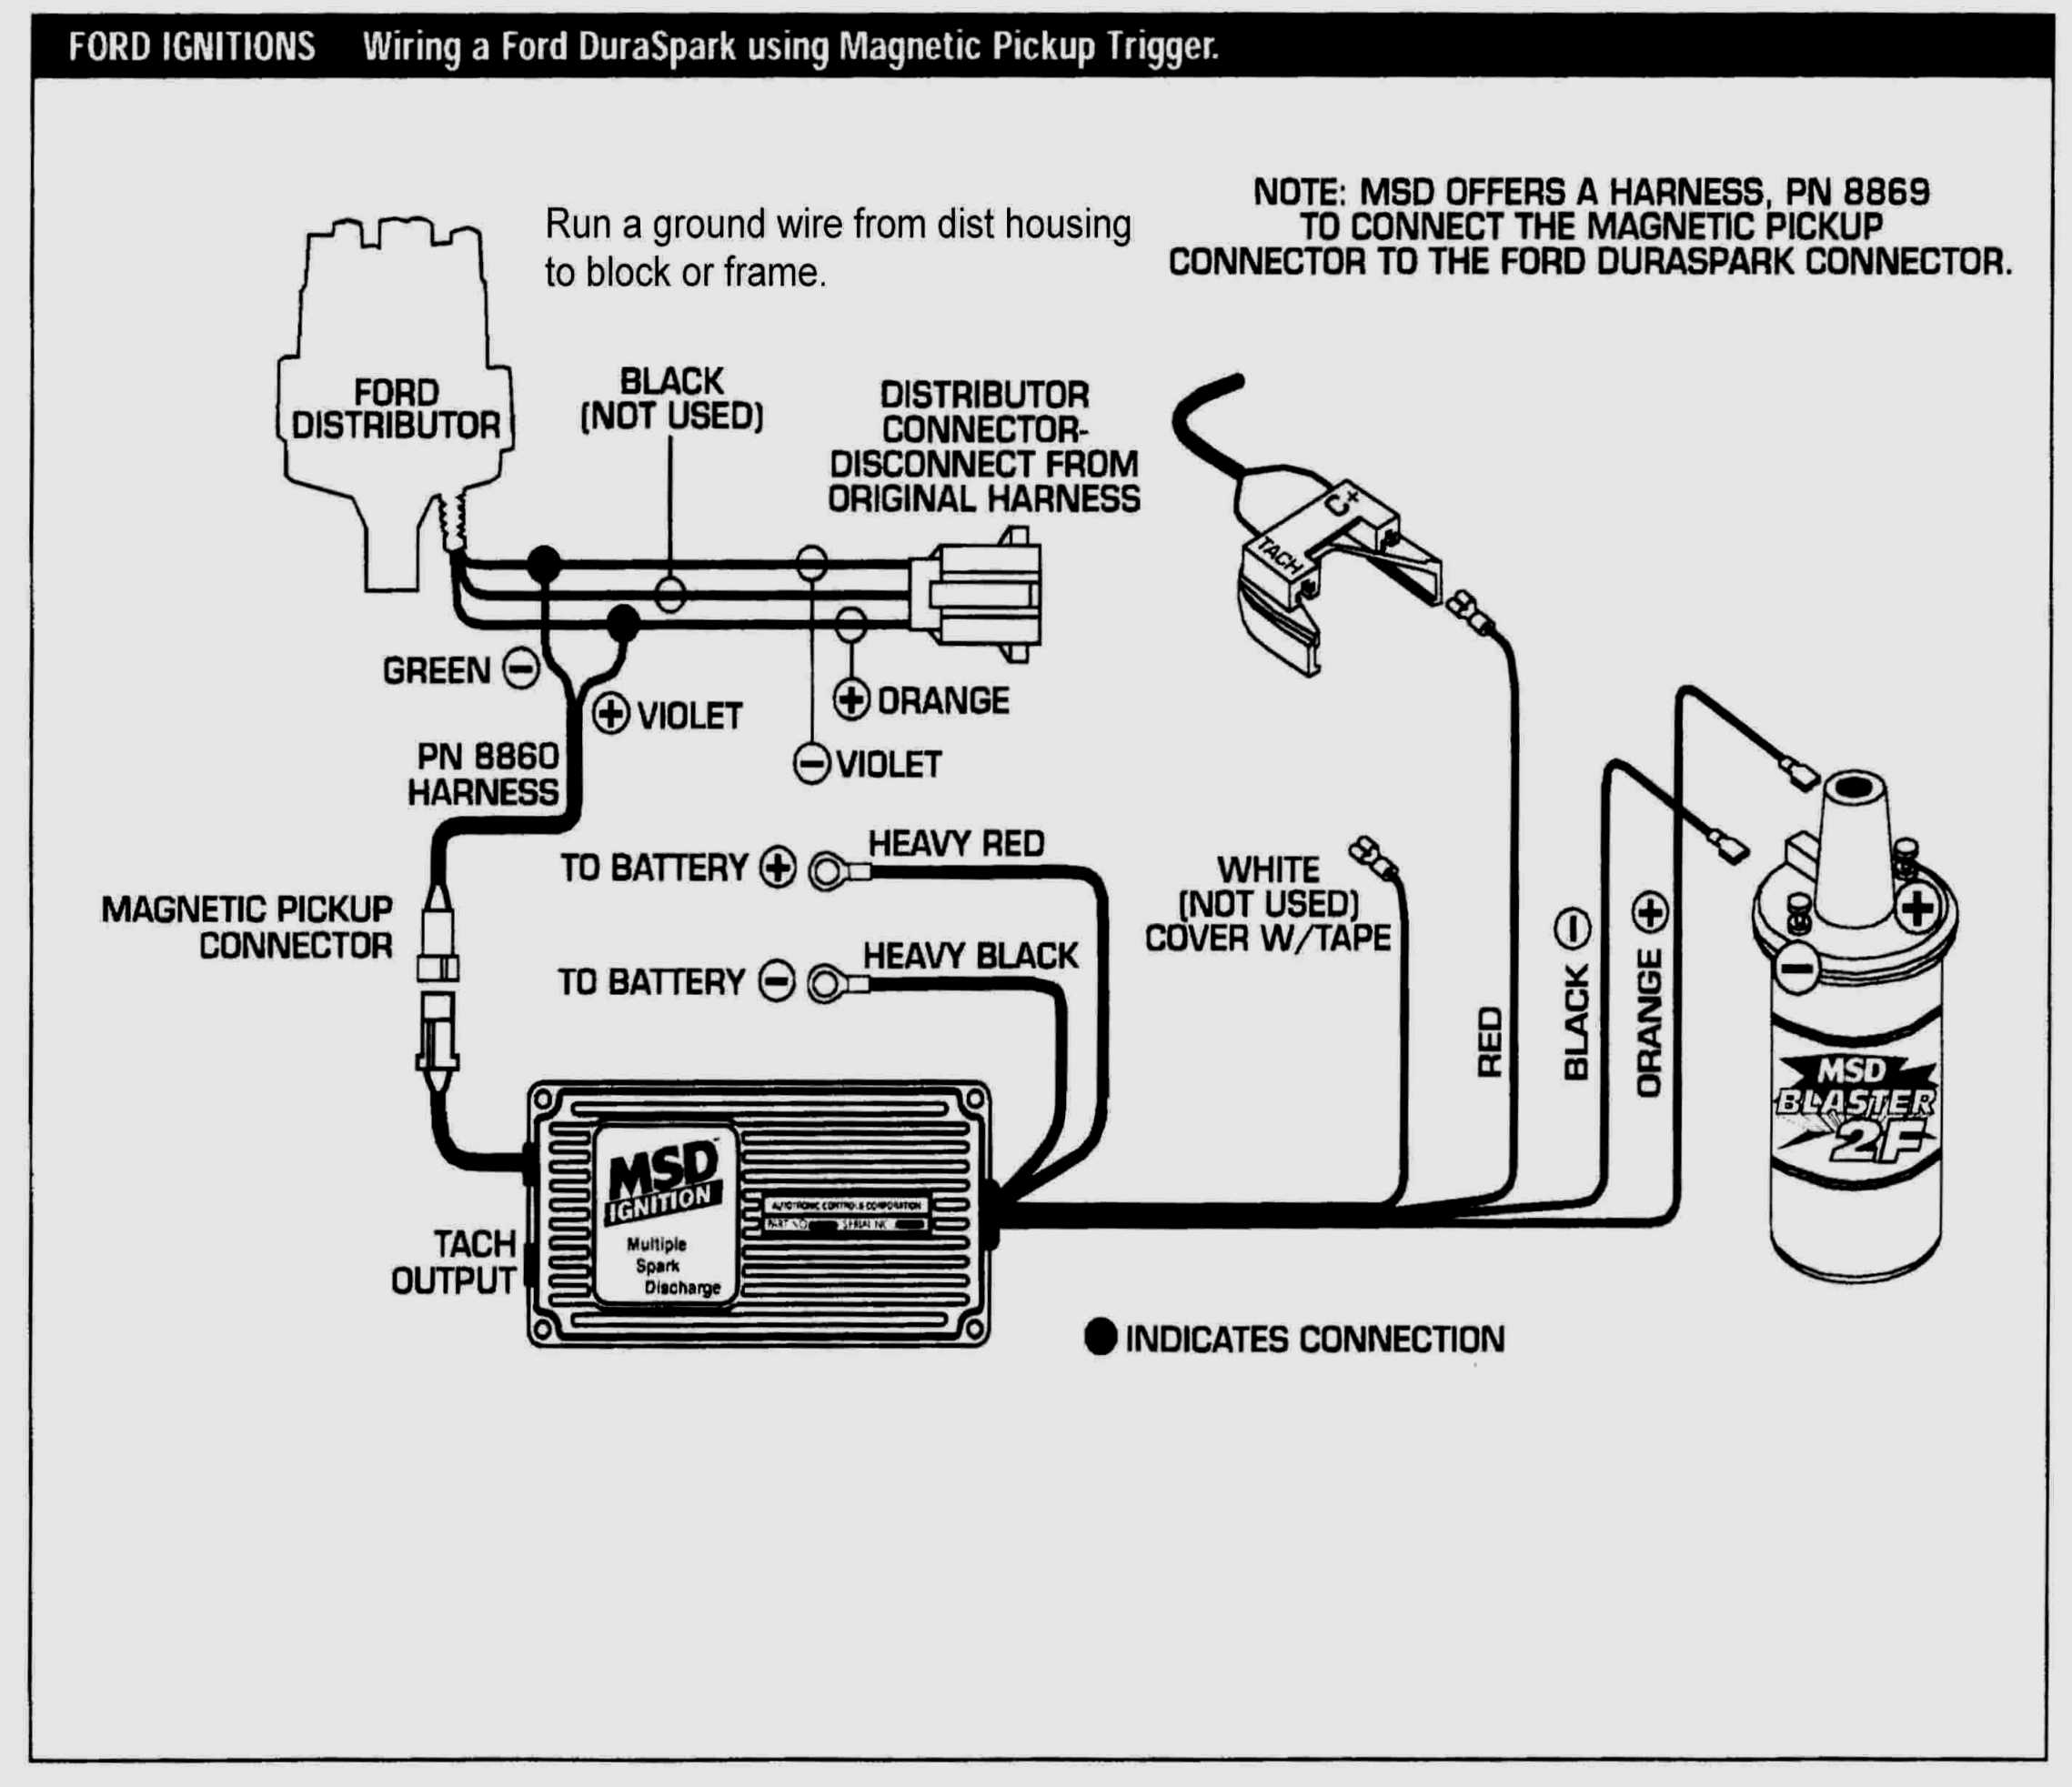 Accel Control Module Wiring Diagram | Wiring Diagram Library - Ford Ignition Control Module Wiring Diagram